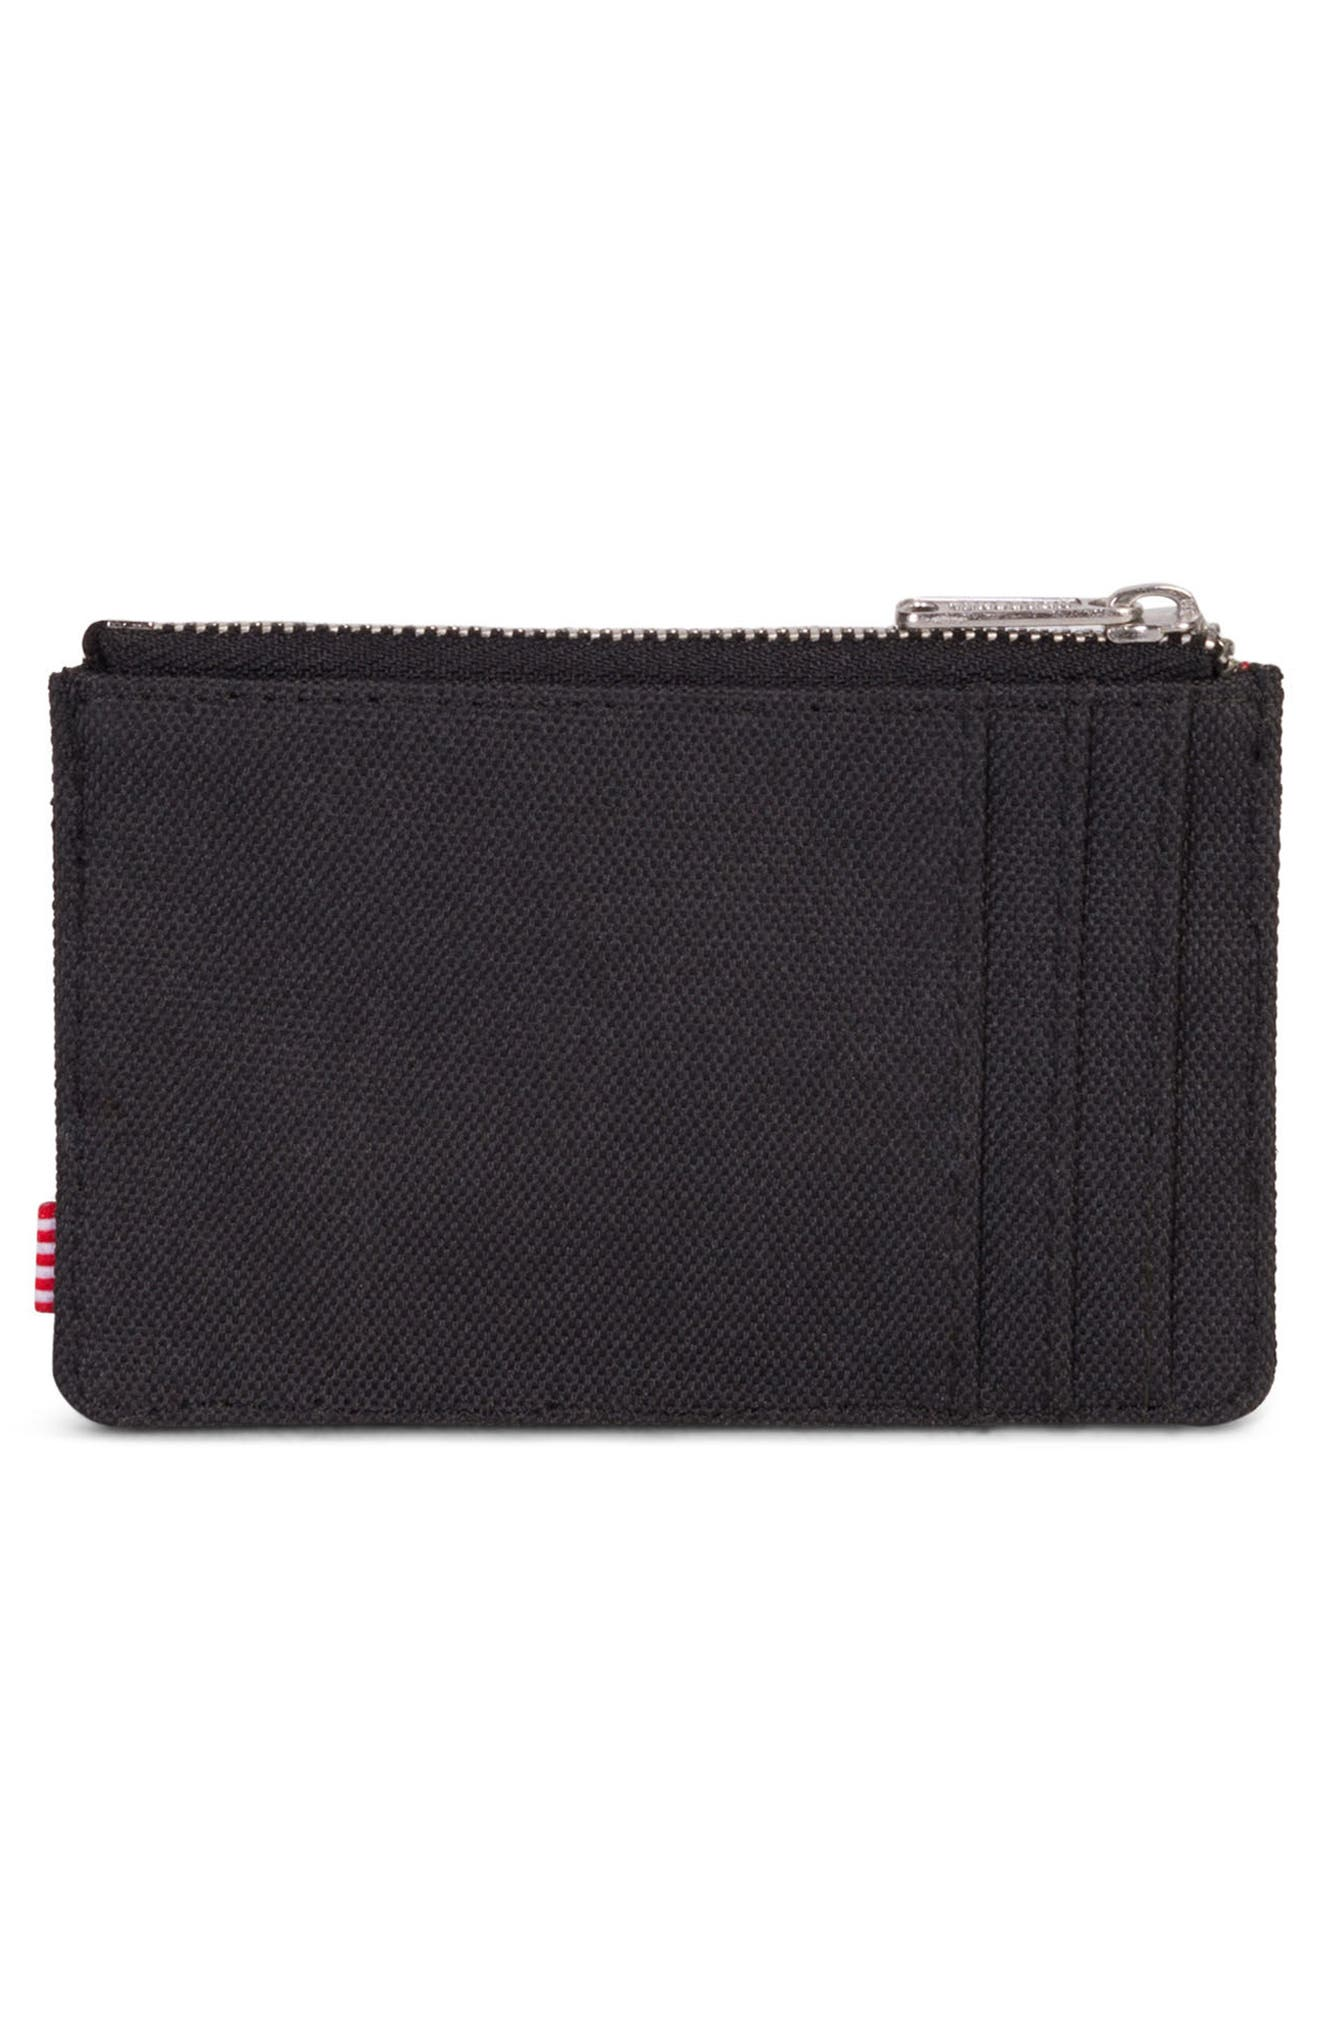 Oscar Card Case,                             Alternate thumbnail 2, color,                             BLACK